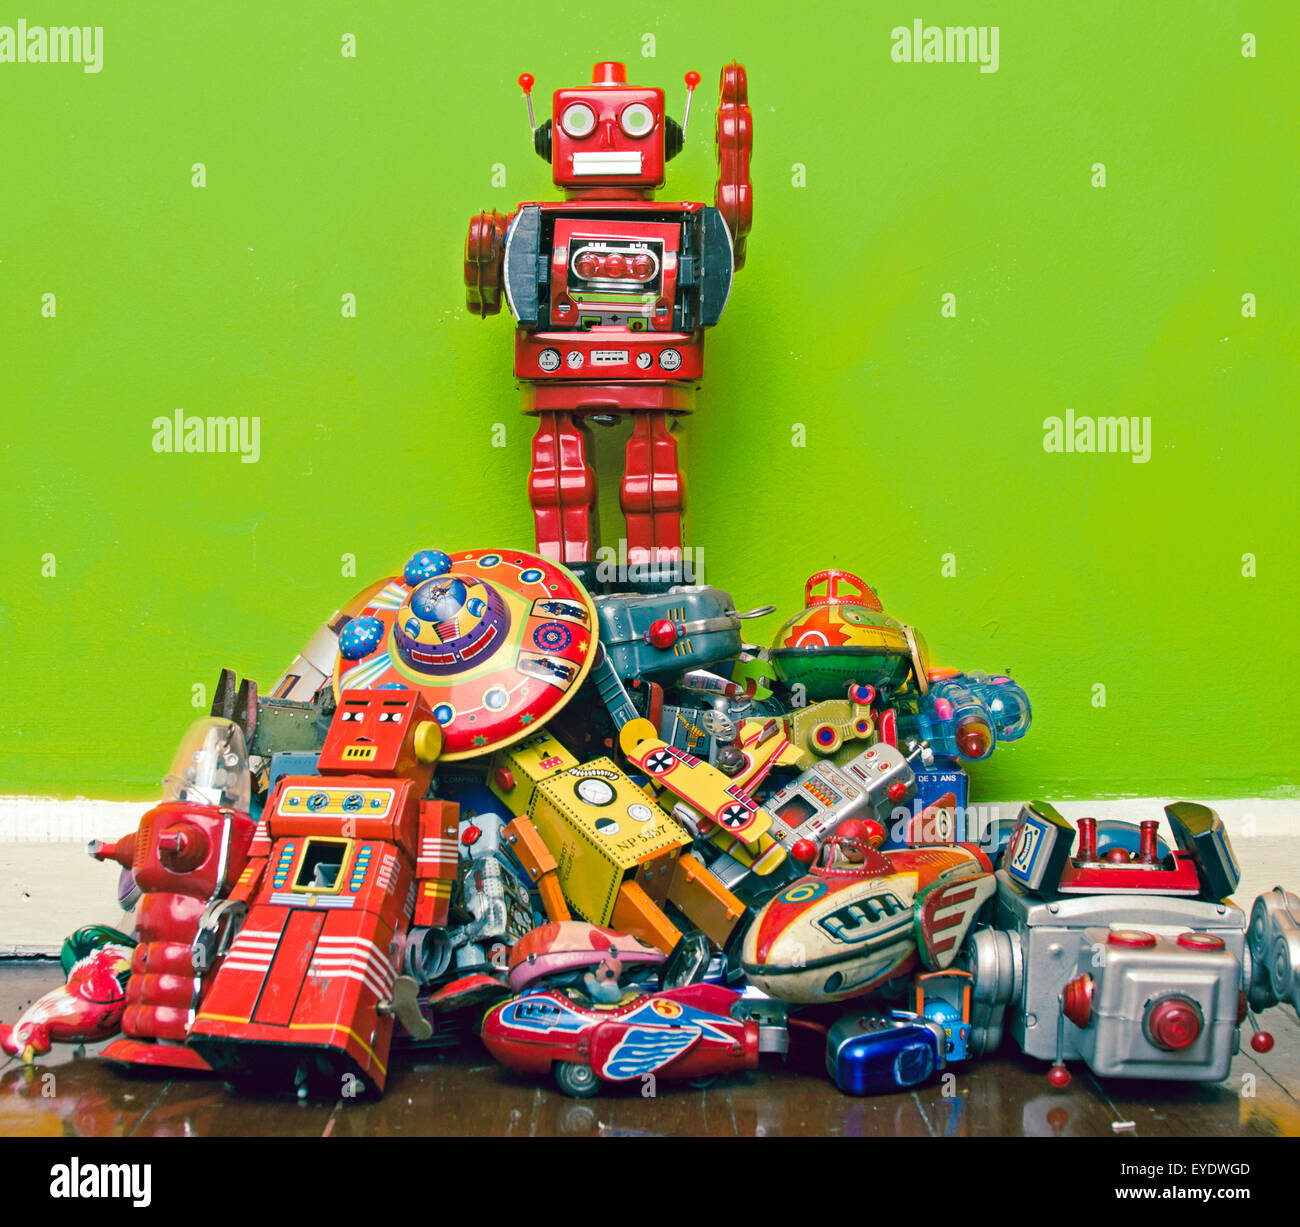 robot toy stands on the oppressed - Stock Image